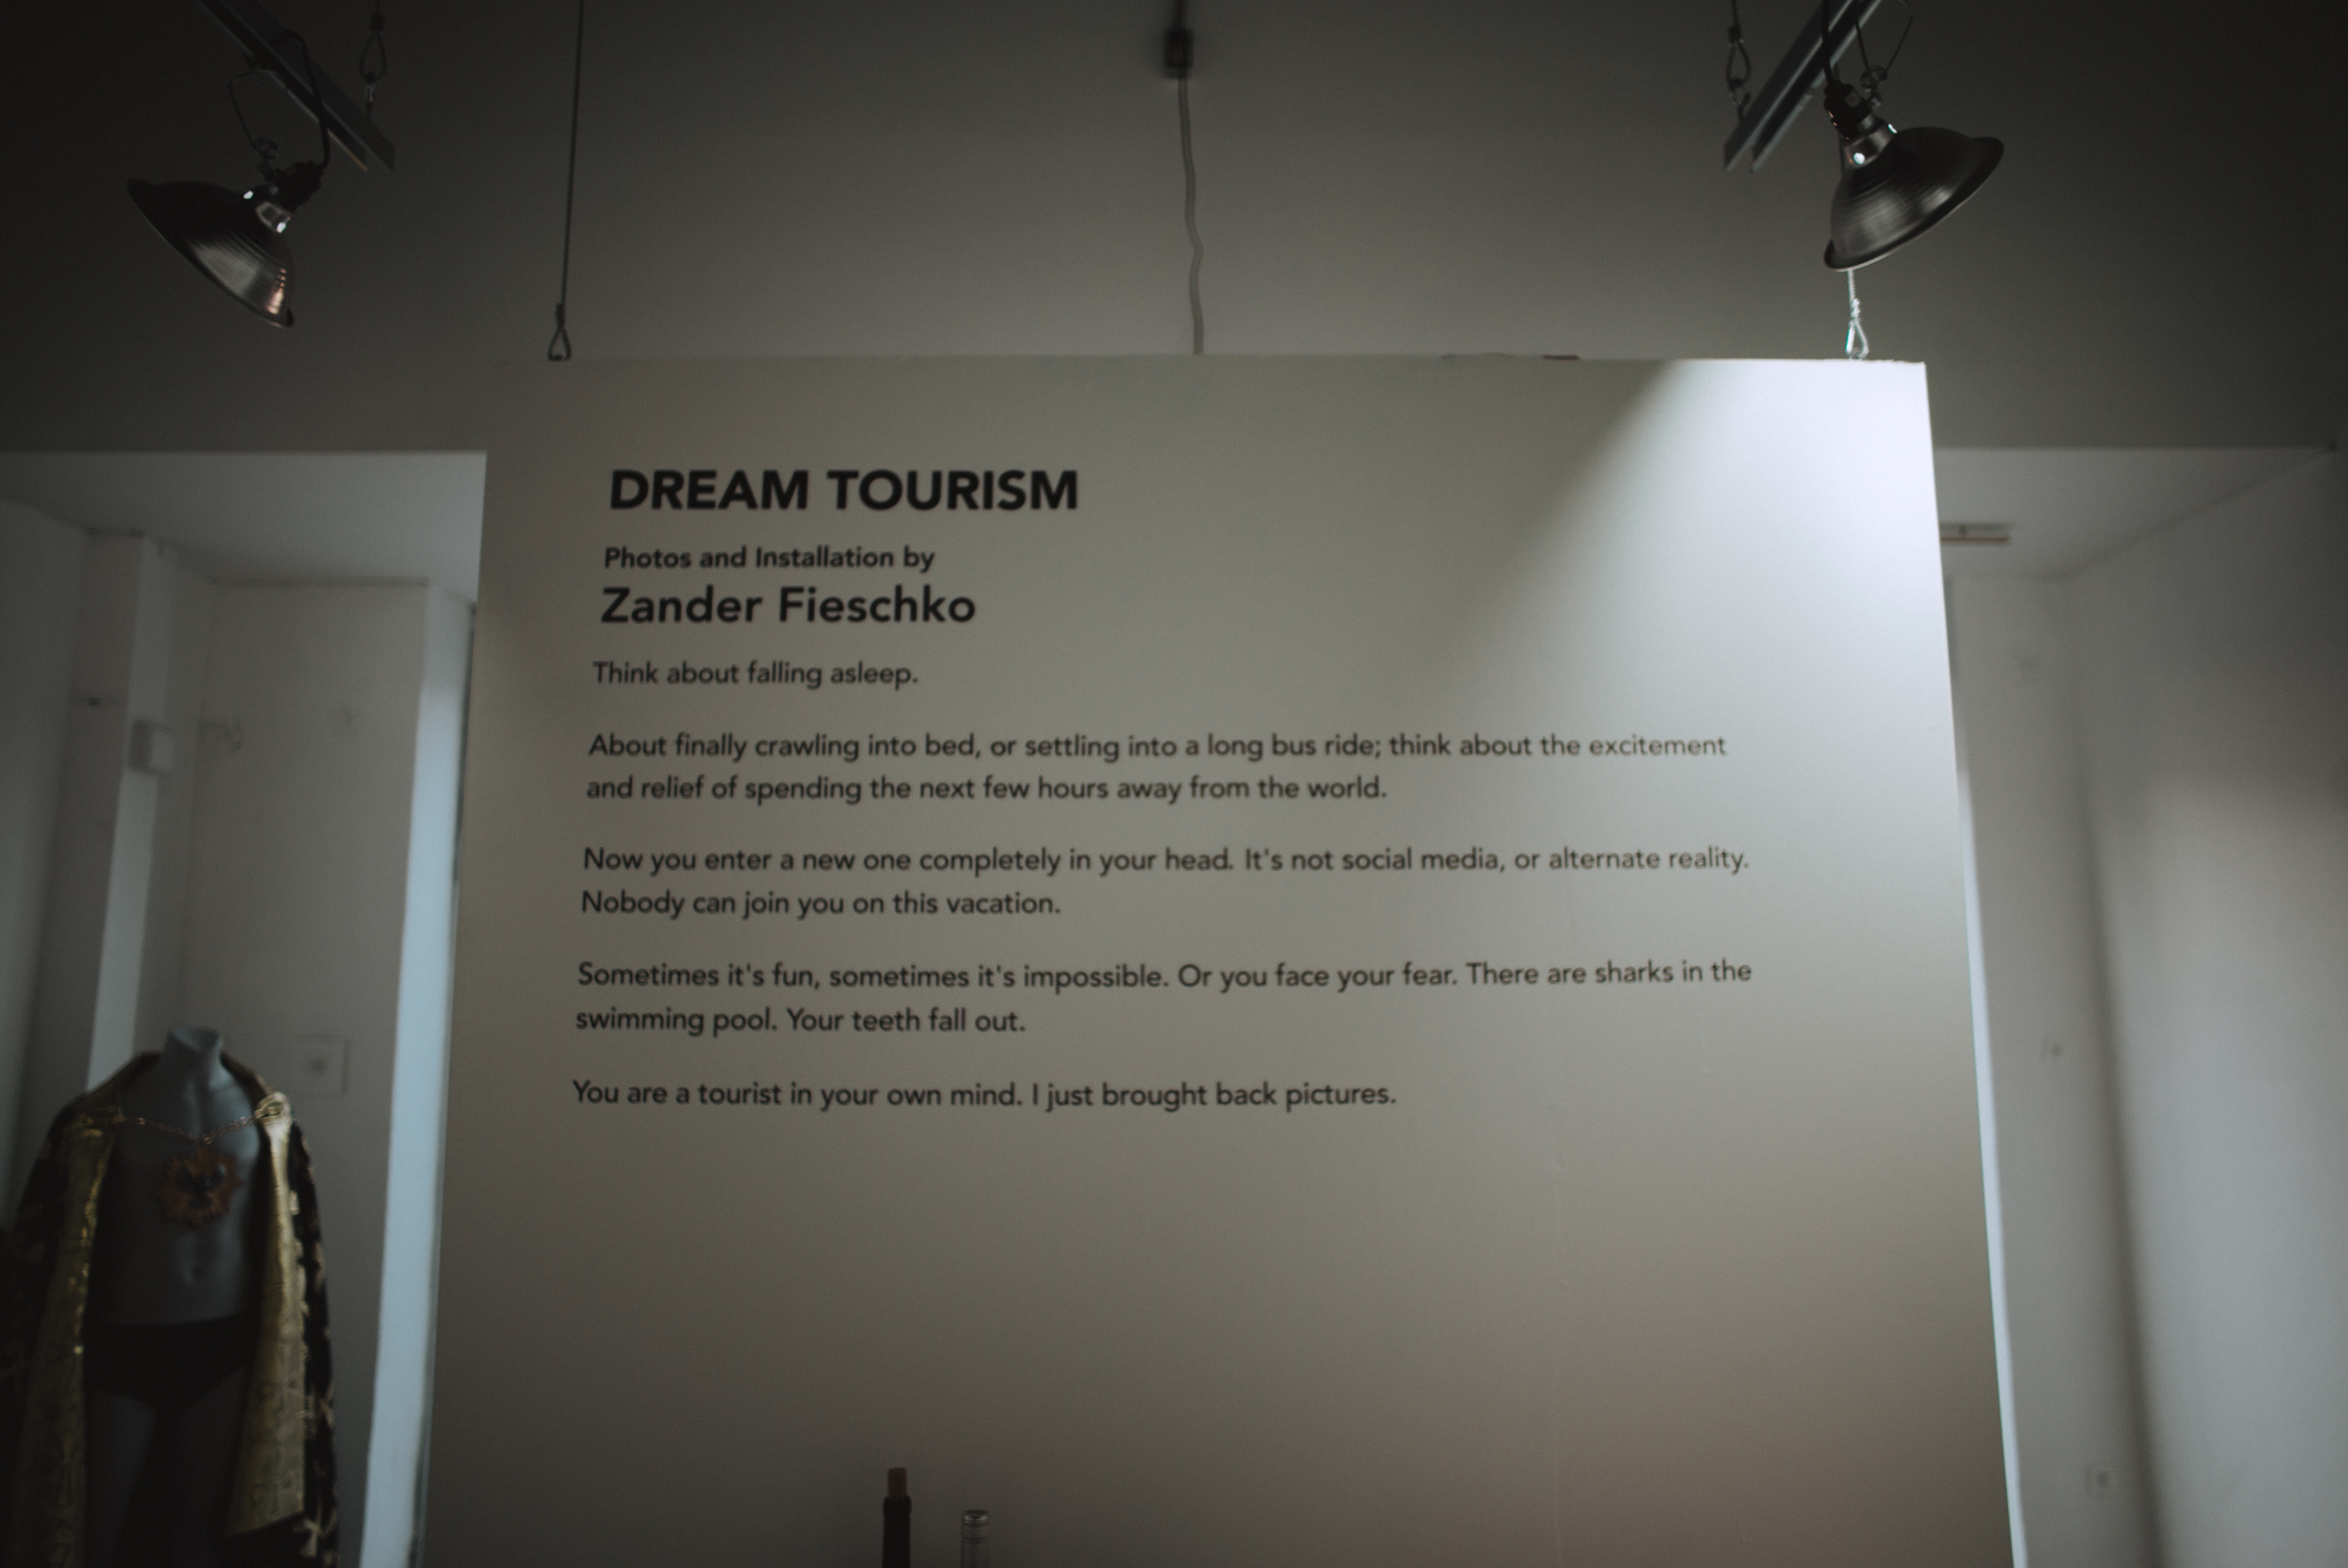 dream tourism salt gallery show 10-25-- teri b photography-1007333.jpg